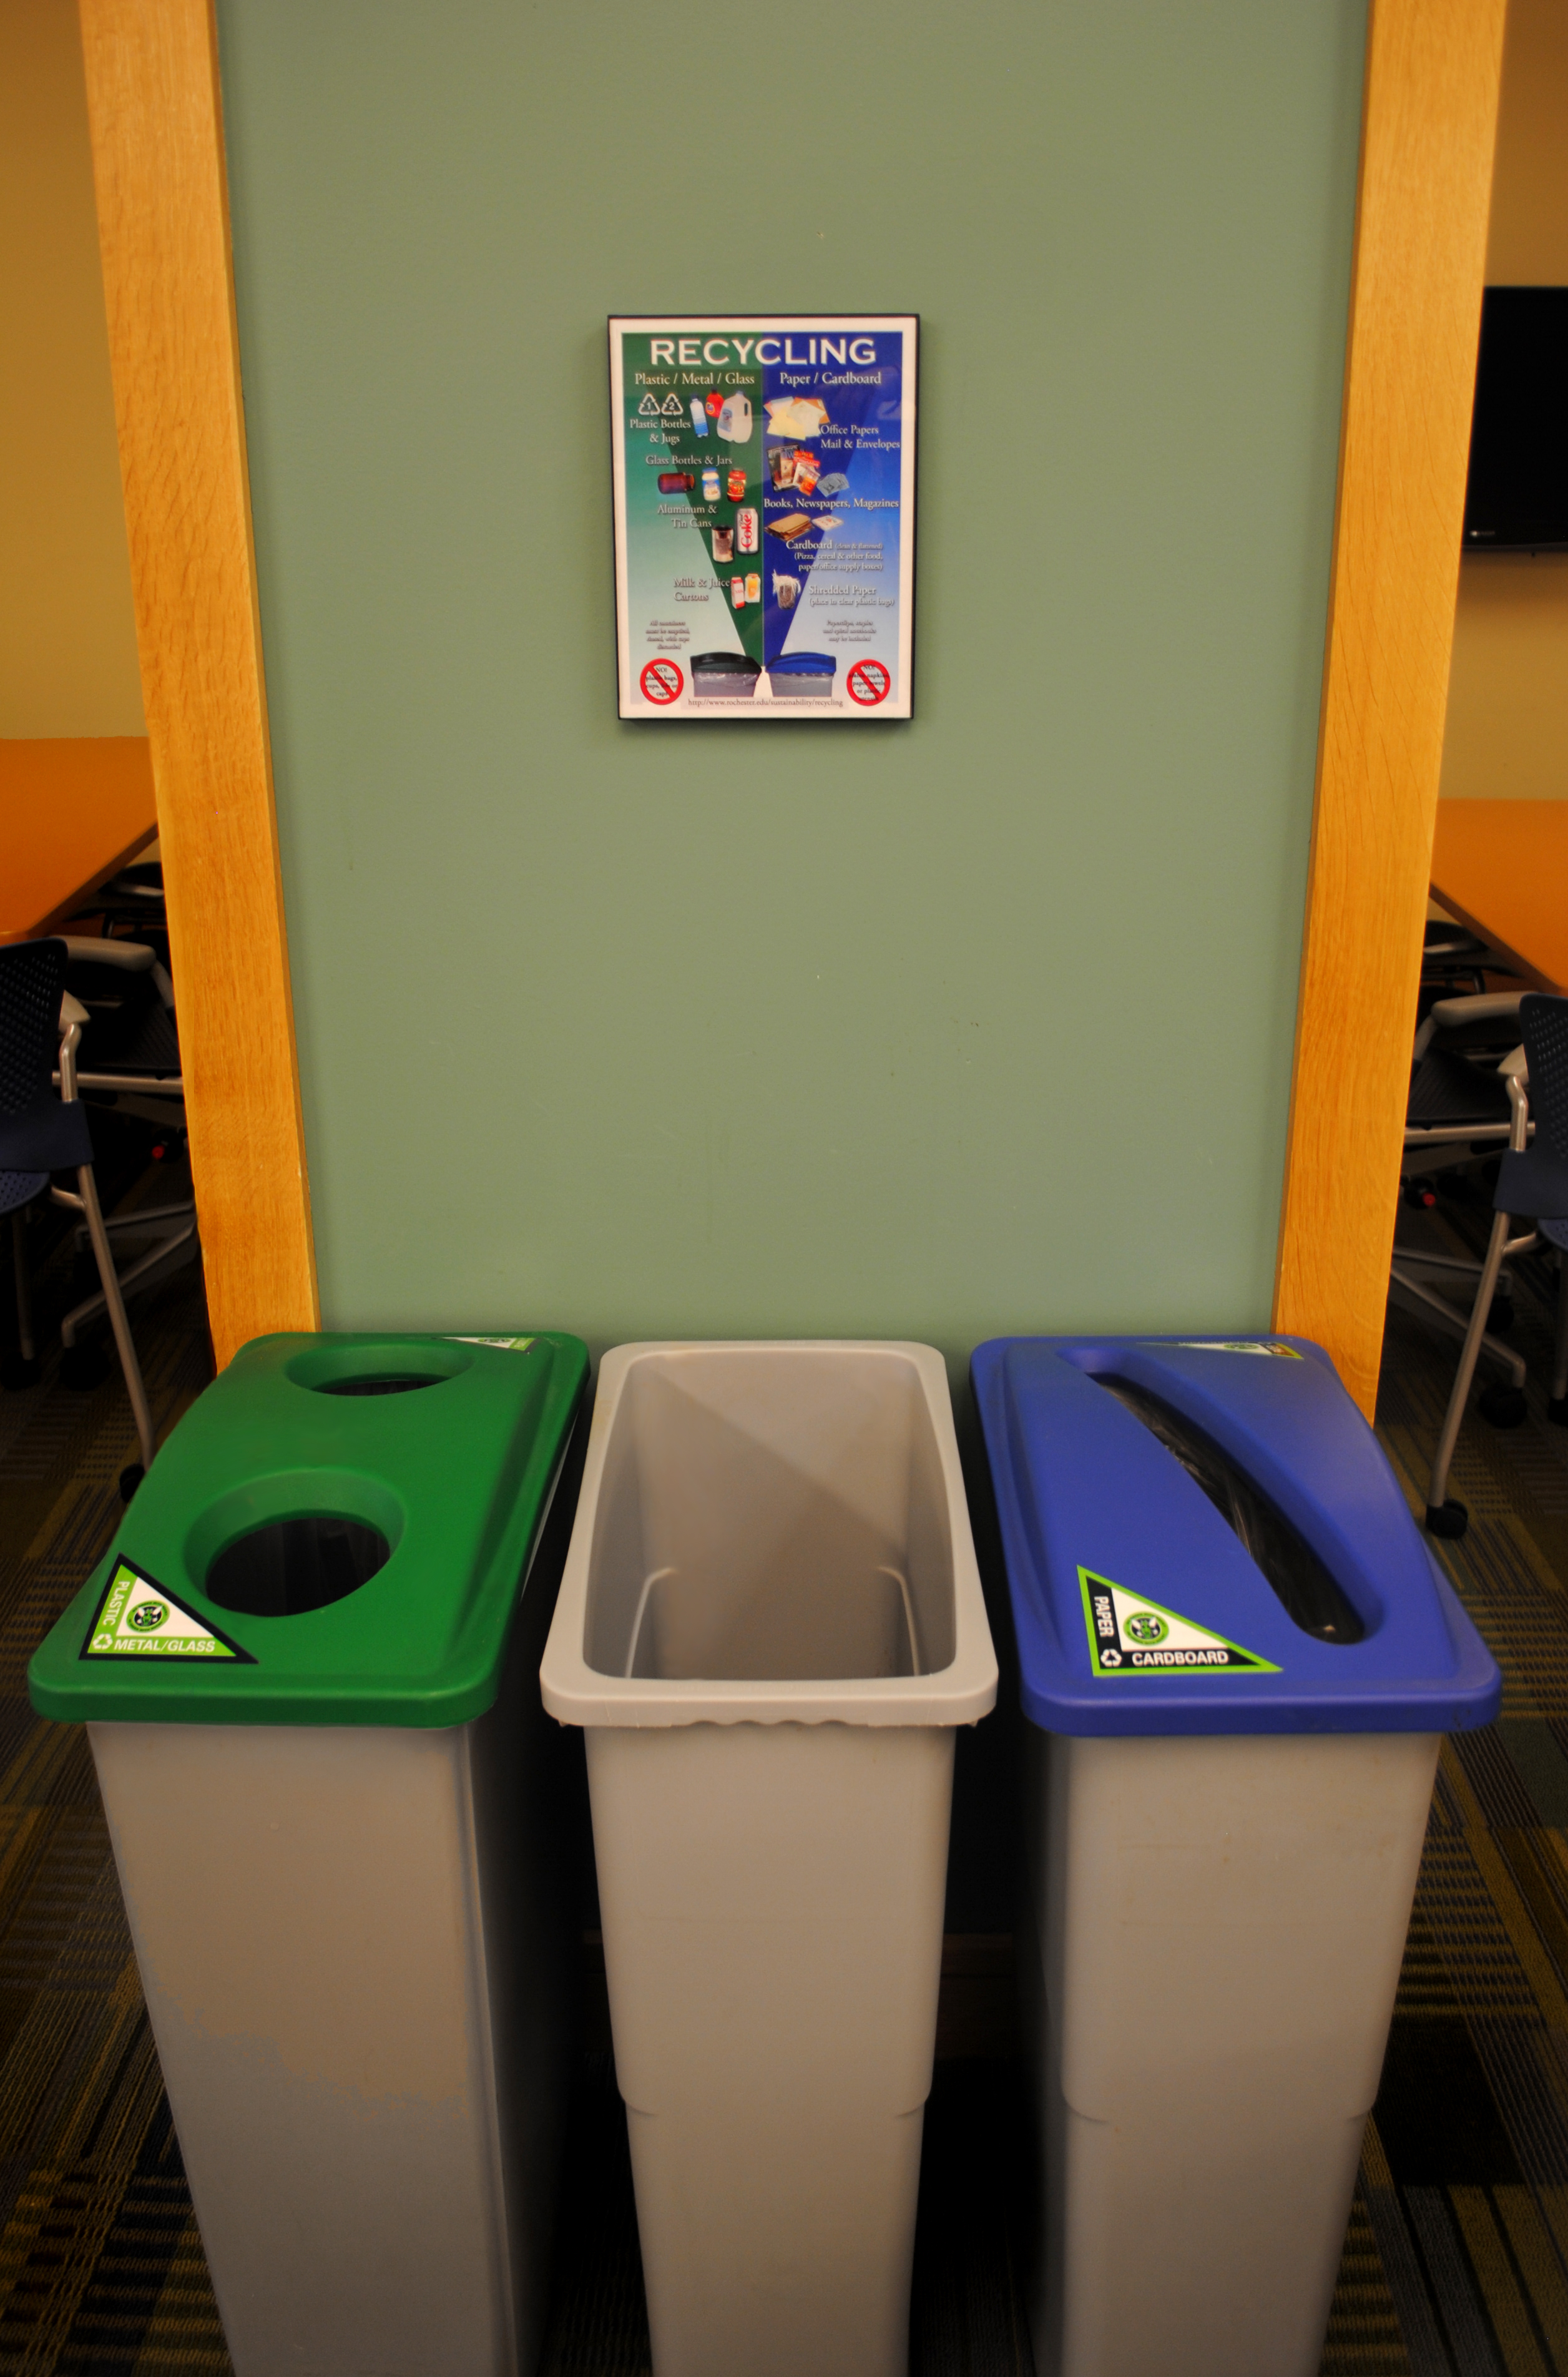 three recycling bins